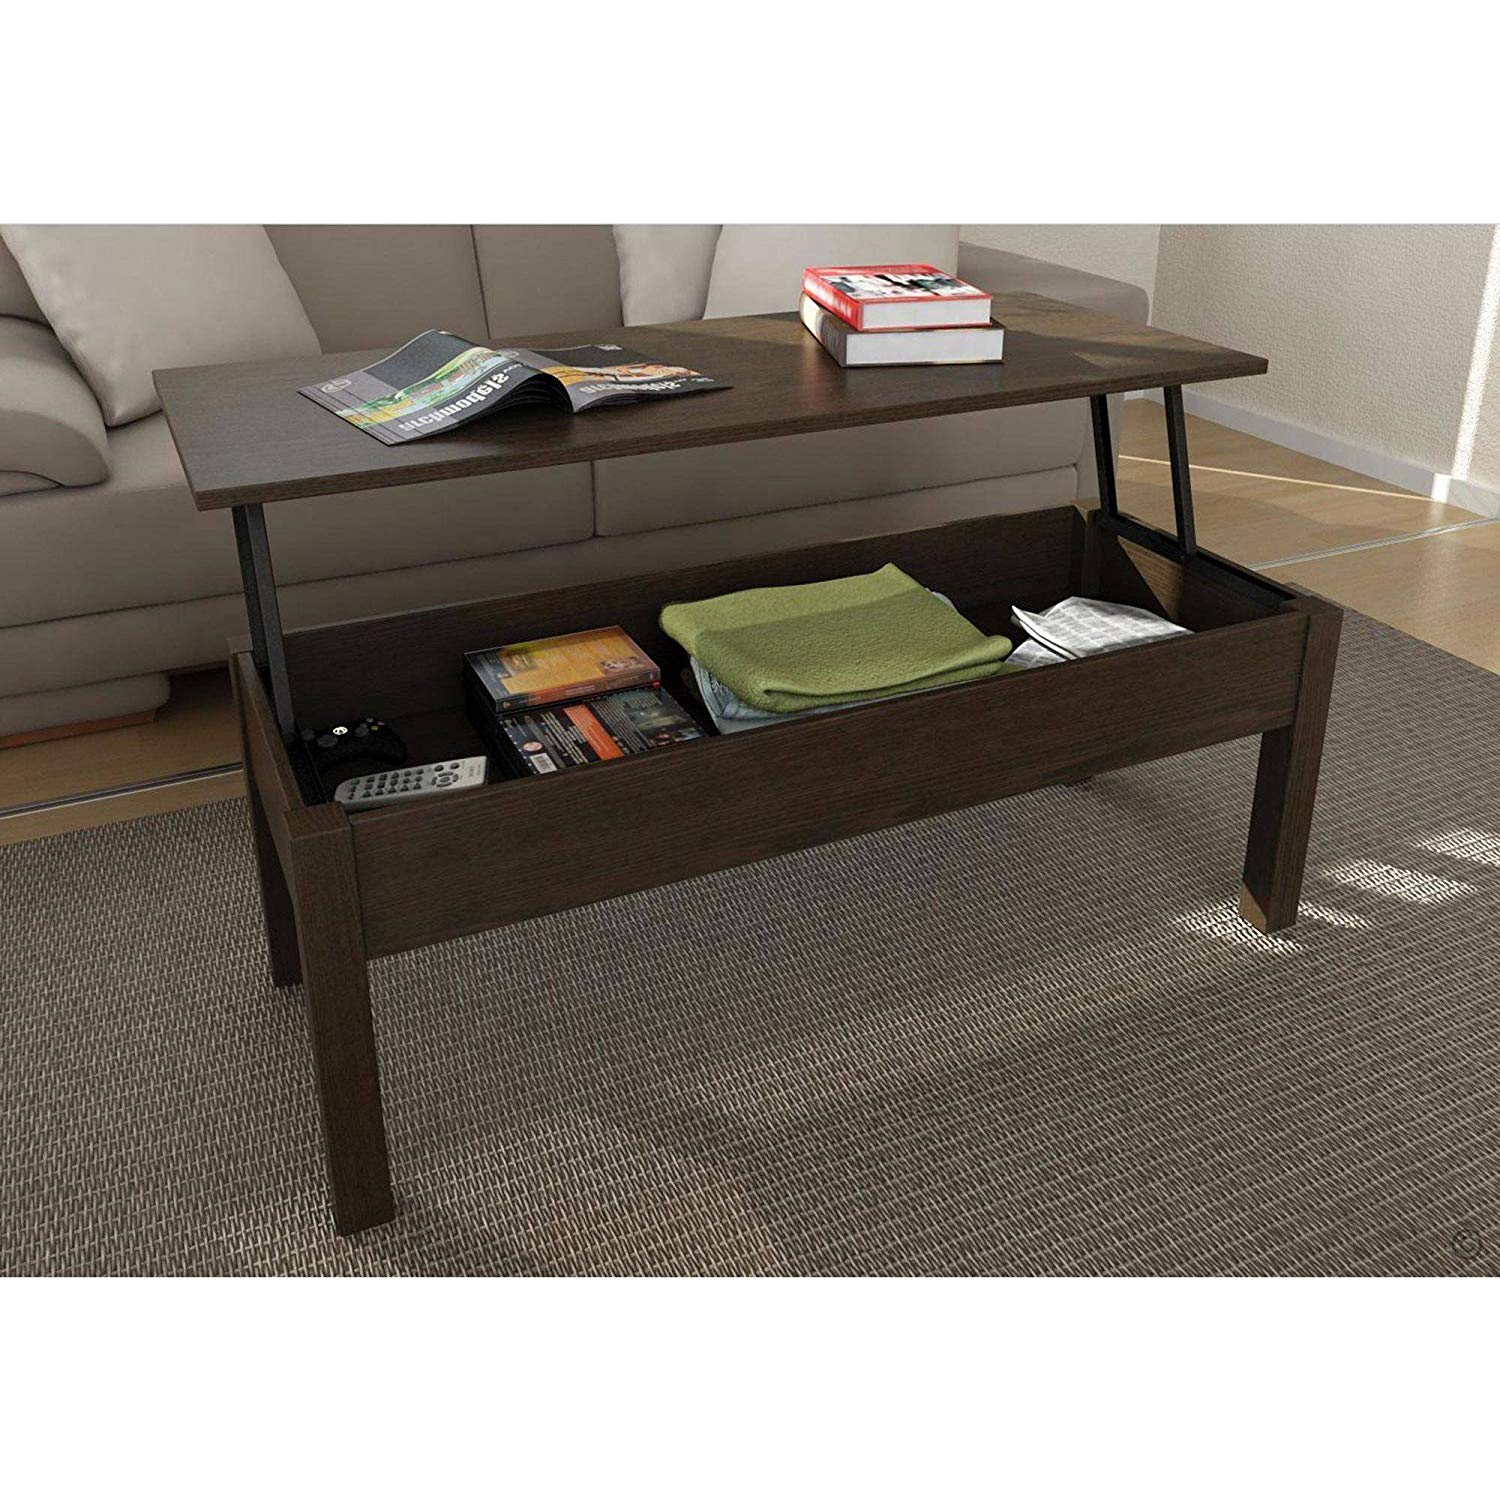 mainstay lift top coffee table brown kitchen dining mainstays round accent small grey end reclaimed wood trestle best tables adidas slides mini console quatrefoil side dinette